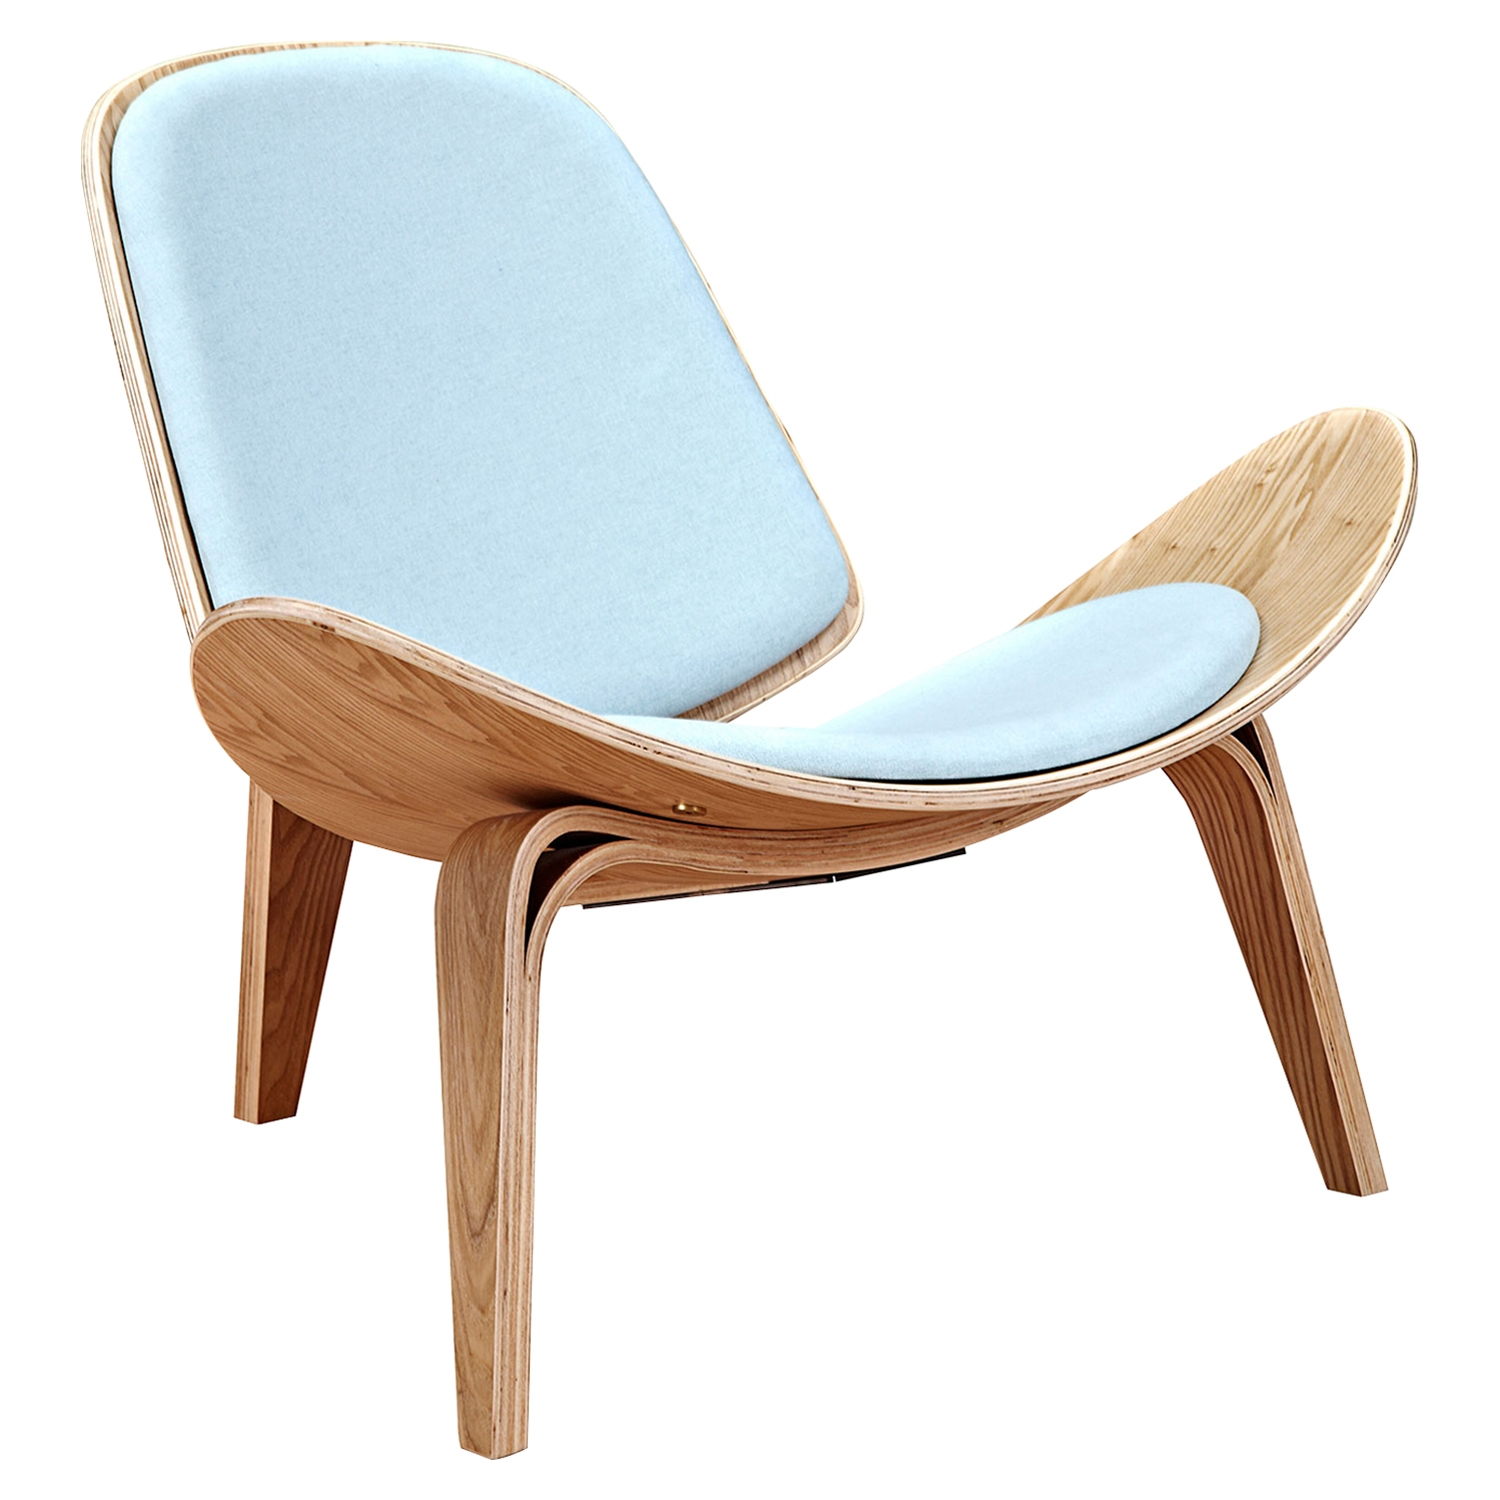 Shell Accent Chair - Glacier Blue - NYEK-224431